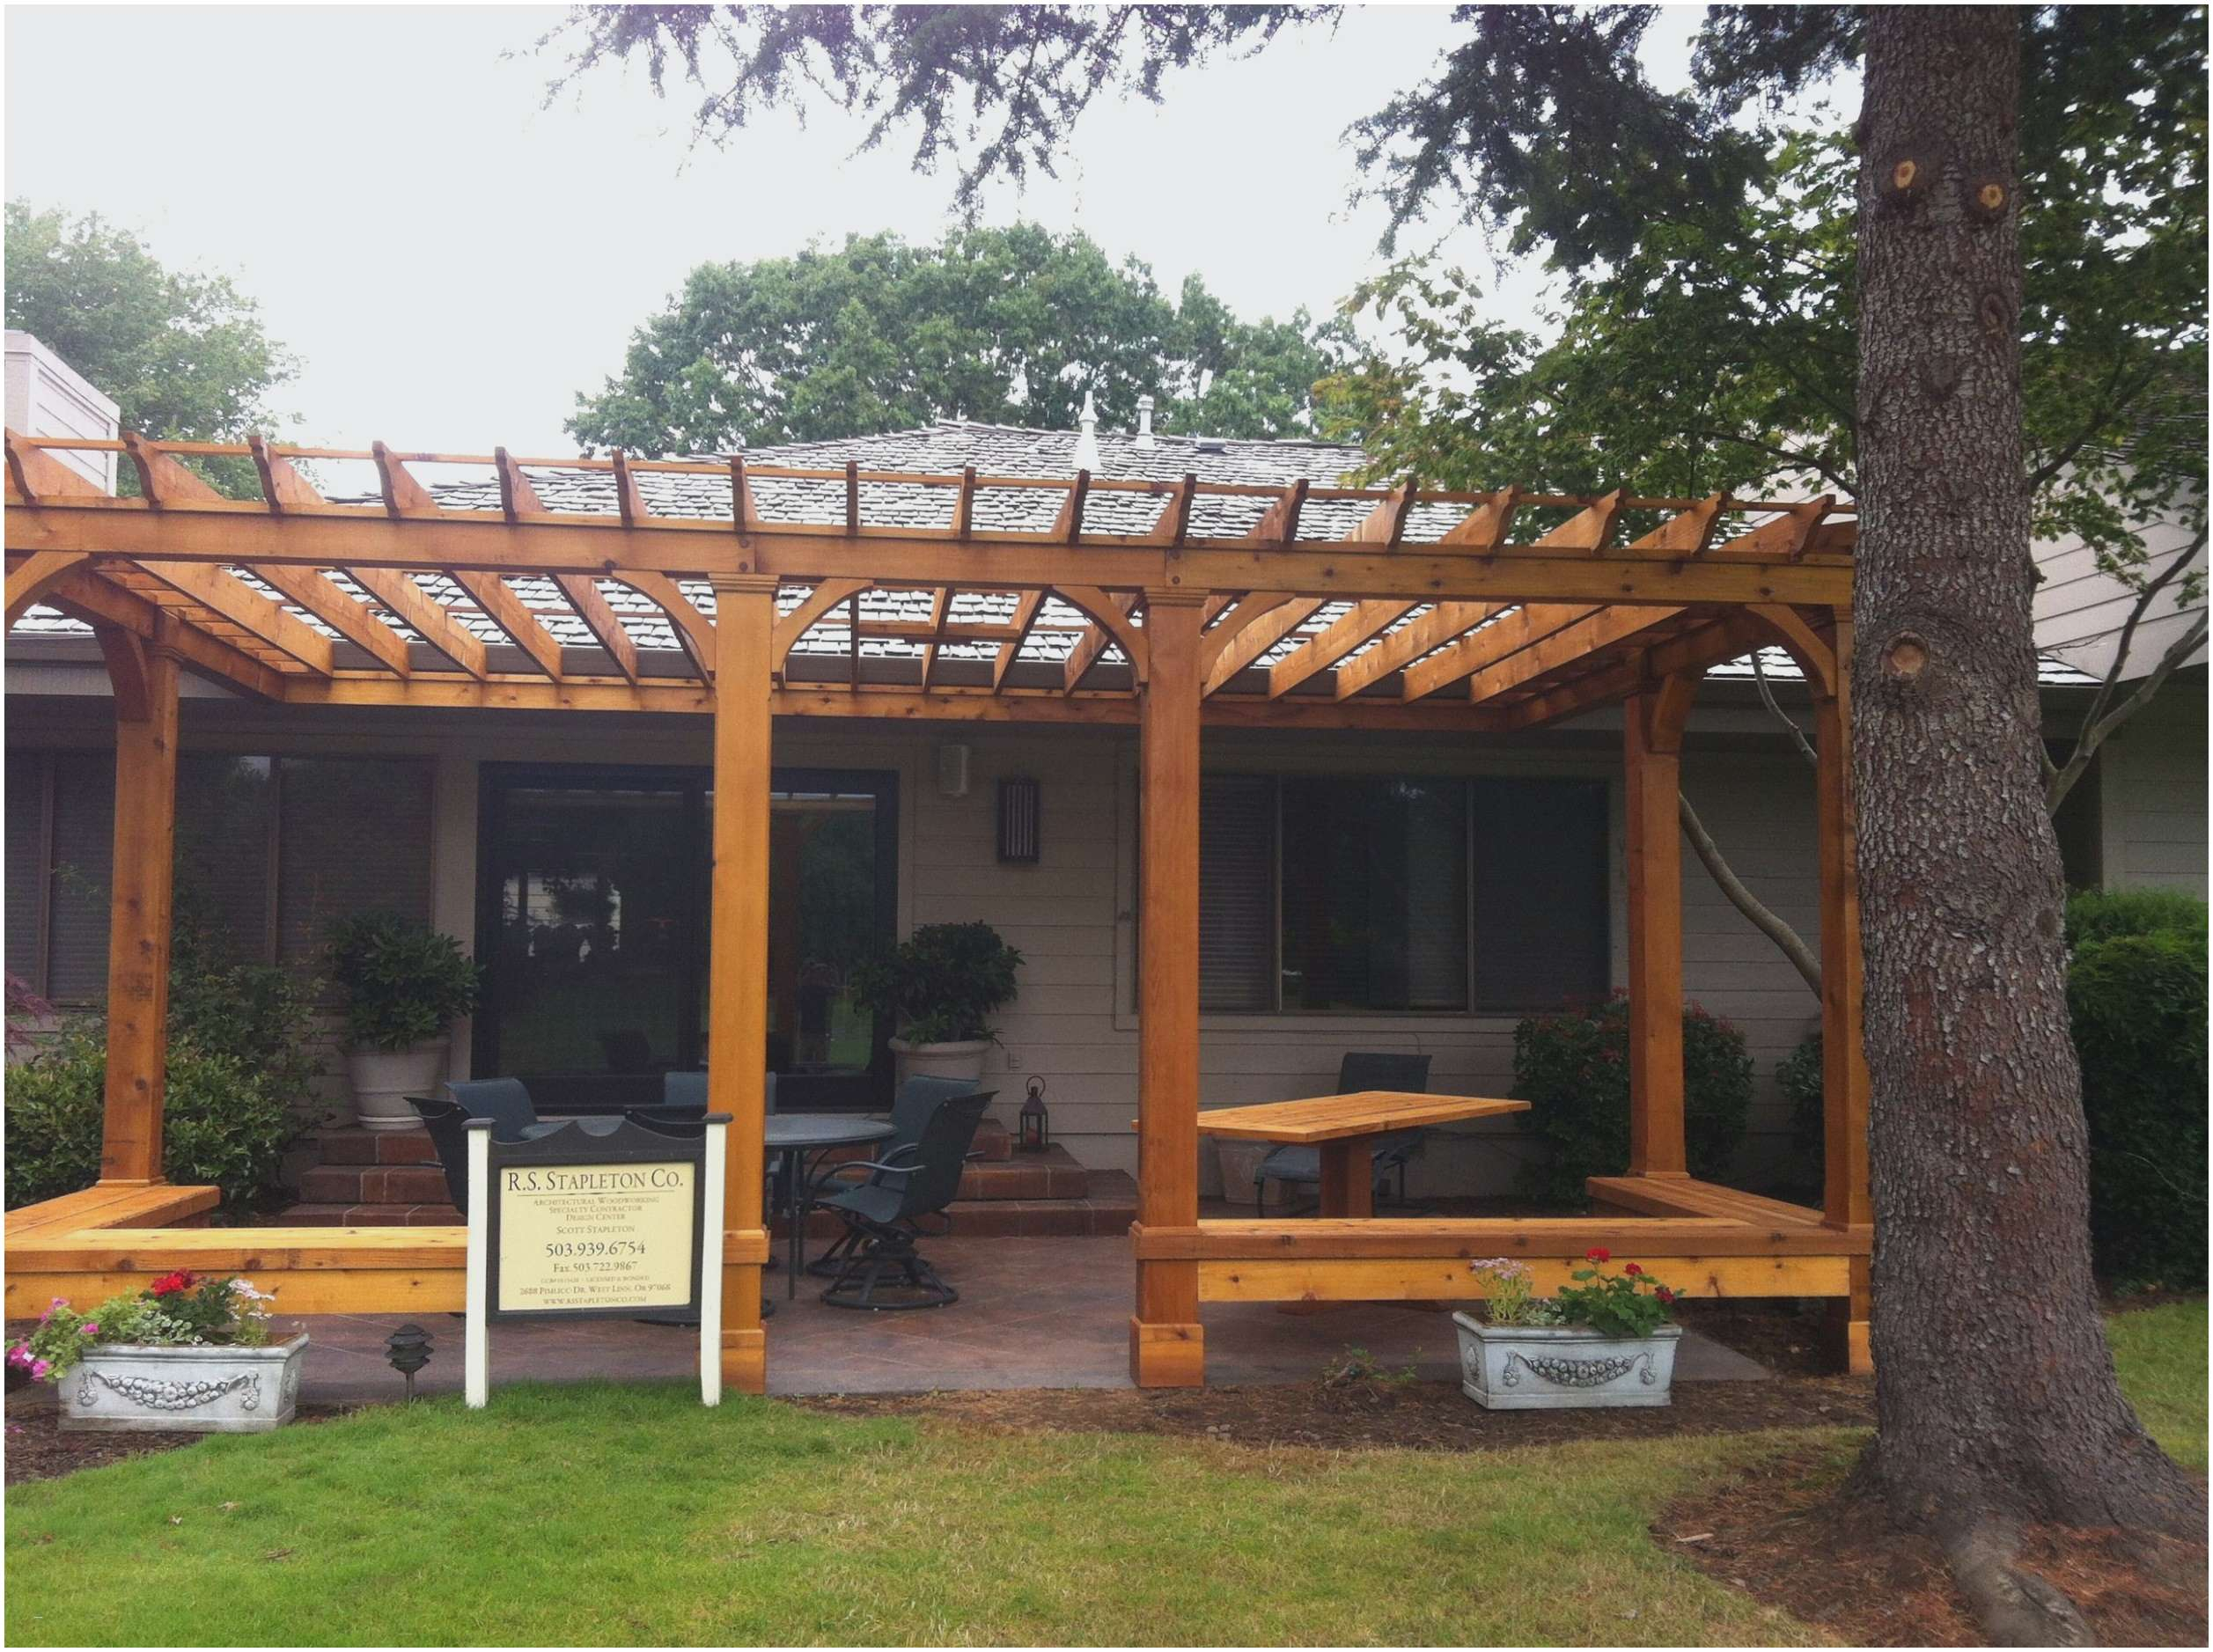 Patio Pavilion Ideas The Perfect With Pergola Lovely Pool Designs intended for 13 Some of the Coolest Ways How to Makeover Pavilion Ideas Backyard